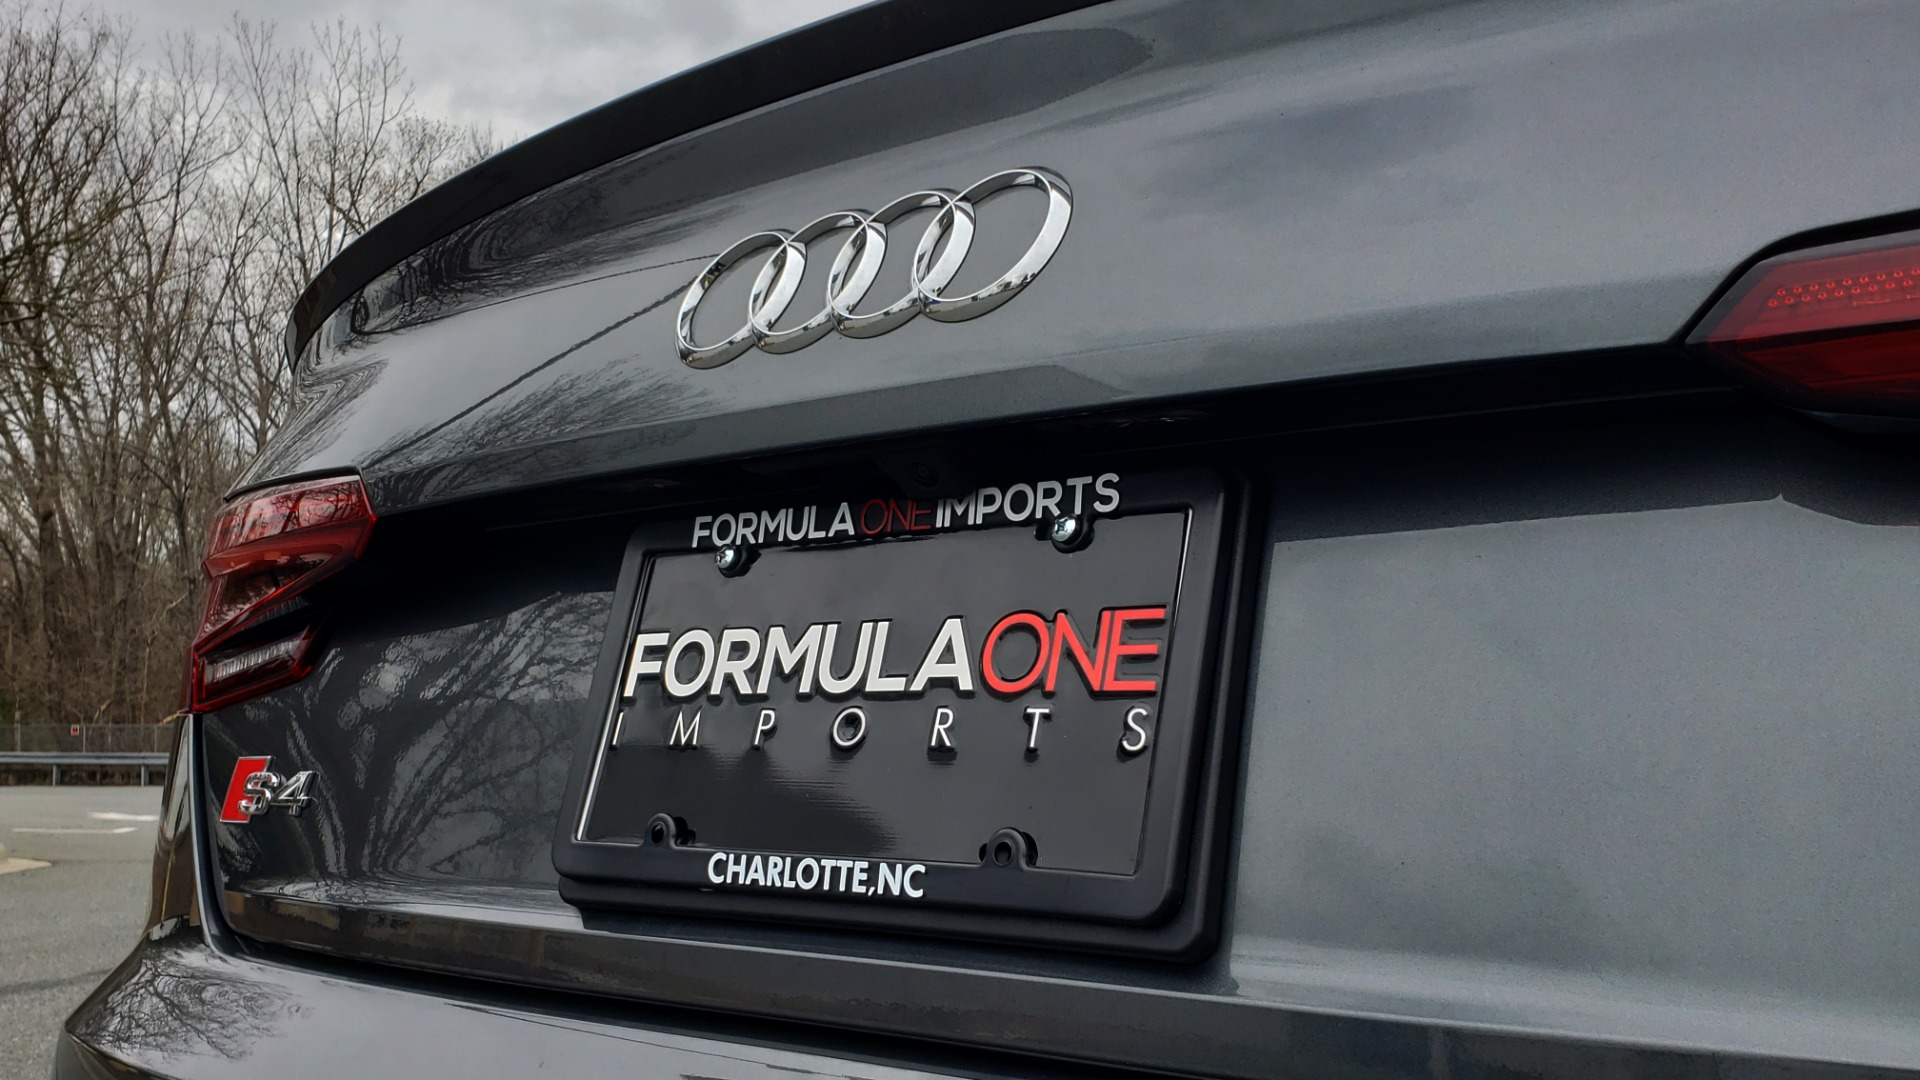 Used 2019 Audi S4 PREMIUM PLUS / AWD / NAV / SUNROOF / B&O SOUND / REARVIEW for sale Sold at Formula Imports in Charlotte NC 28227 30